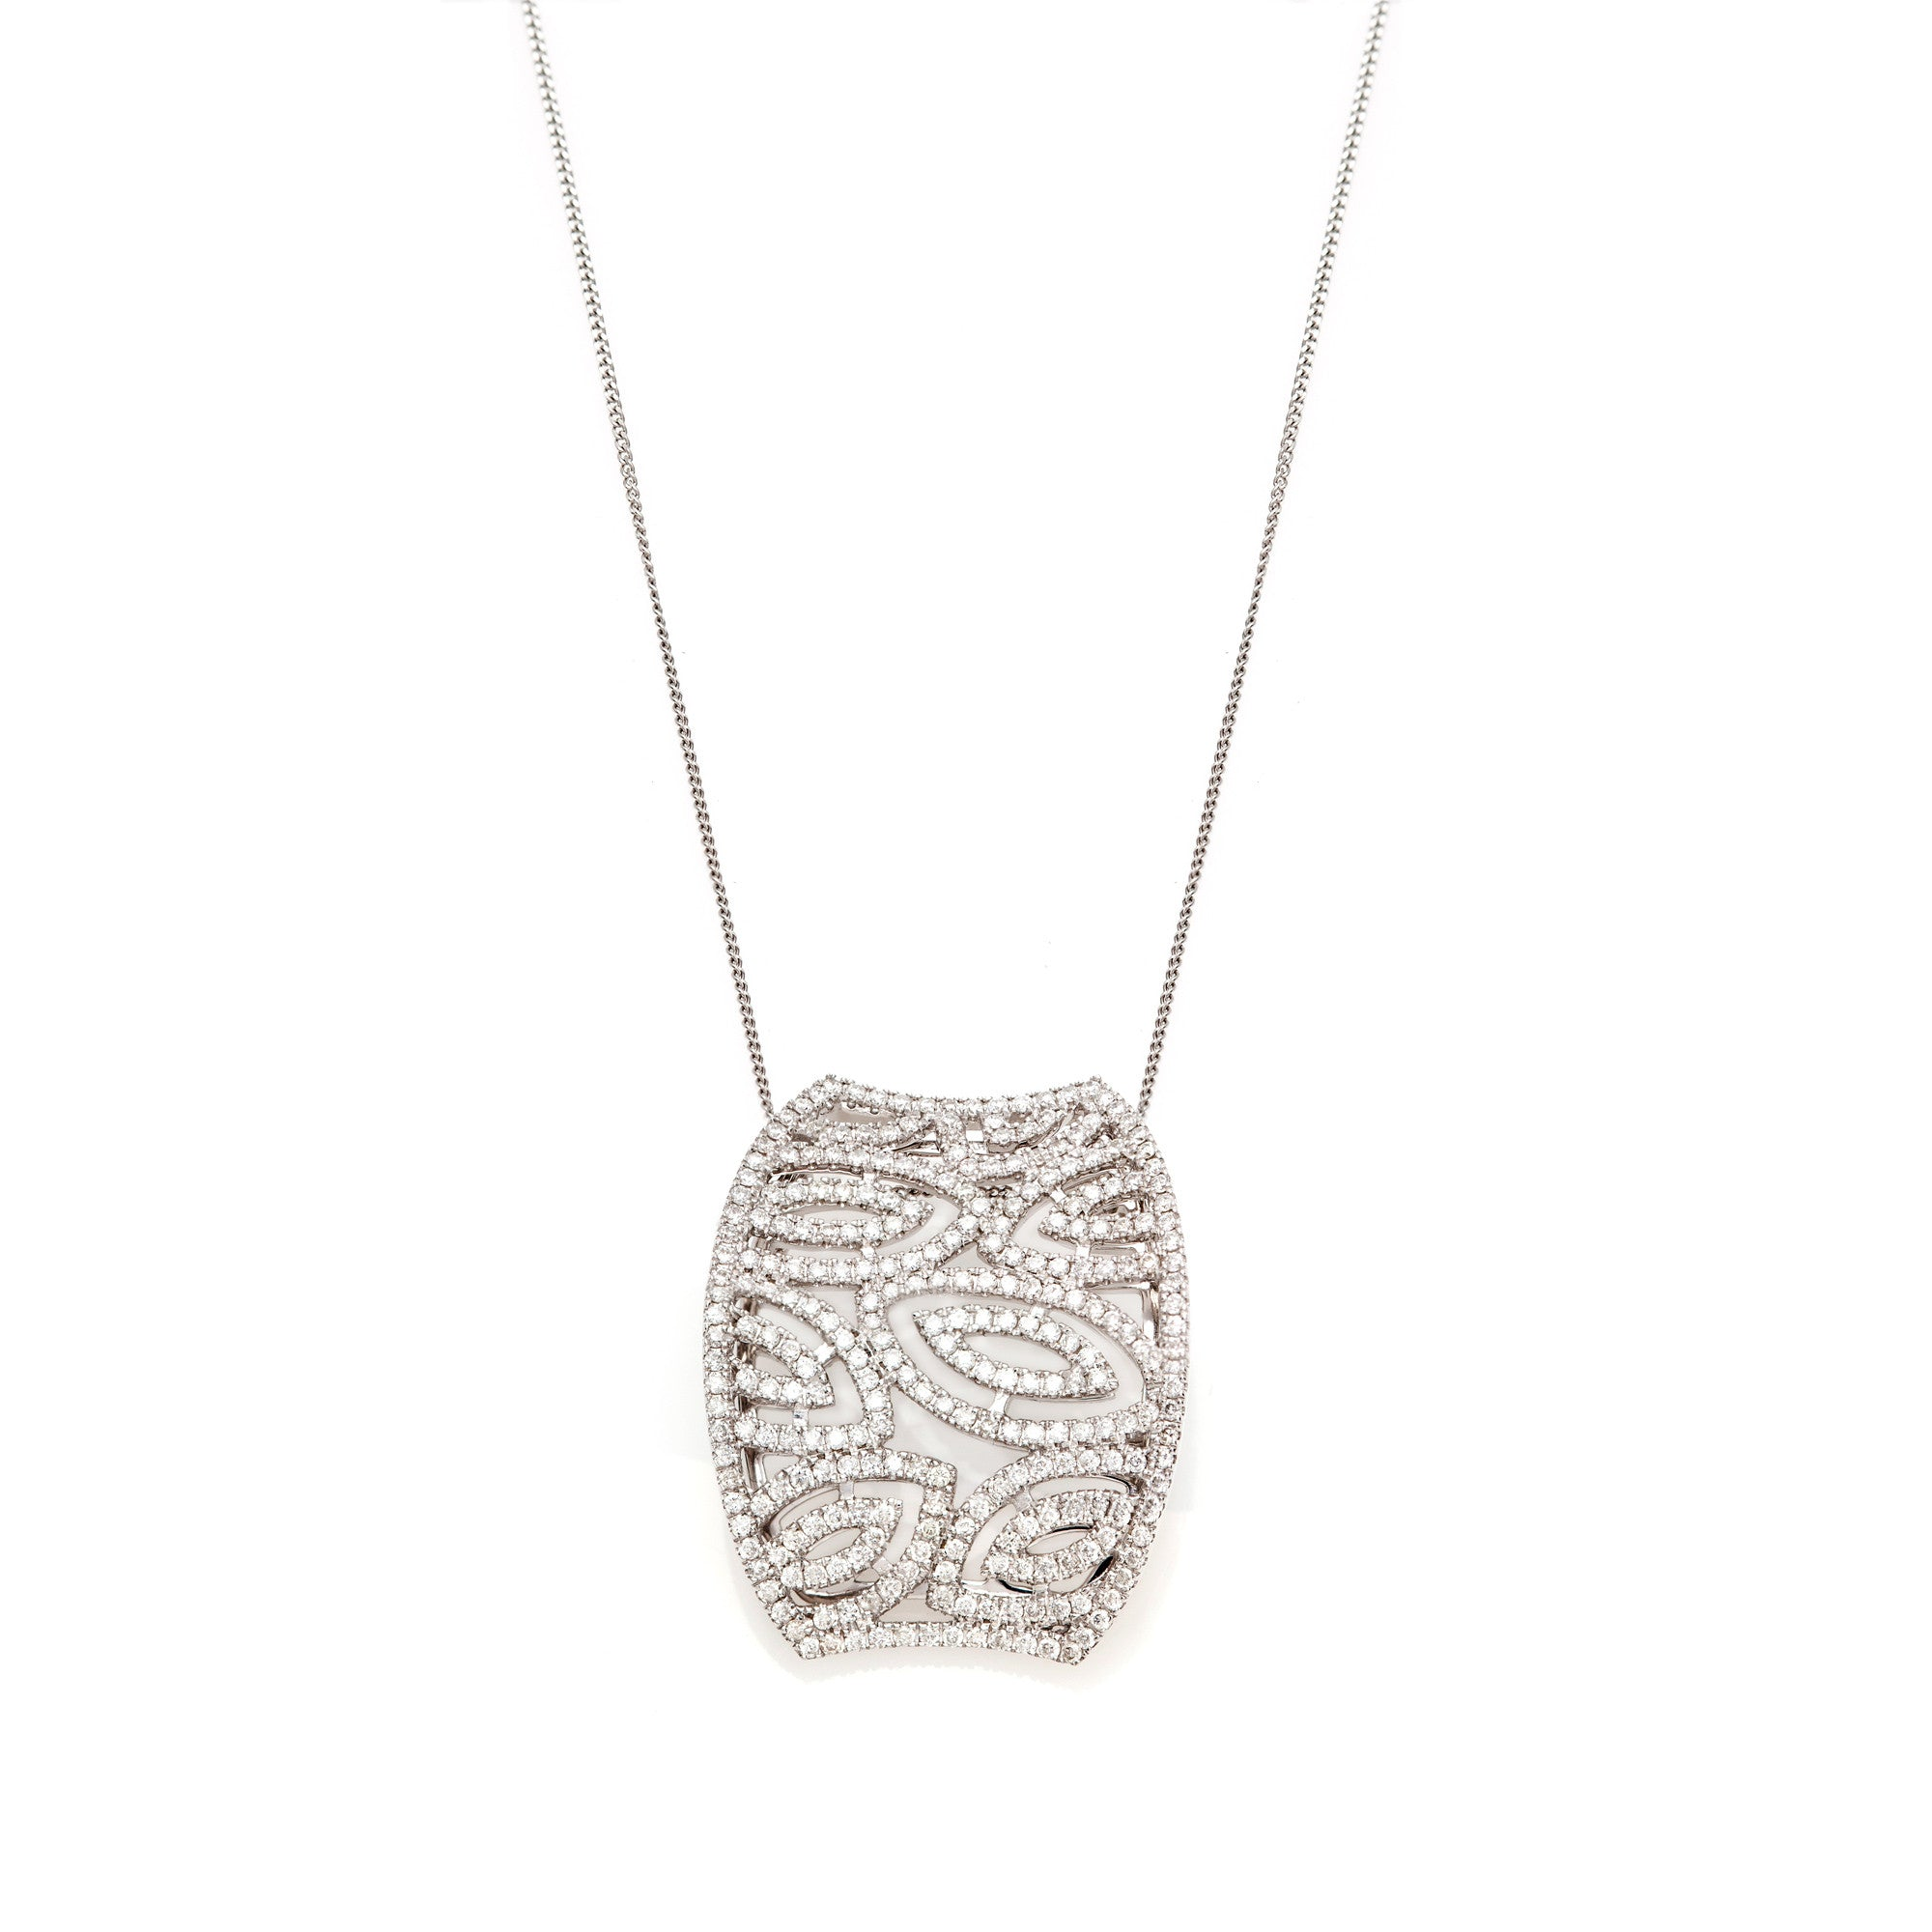 Pavé Diamond Curved Pendant-50% OFF!